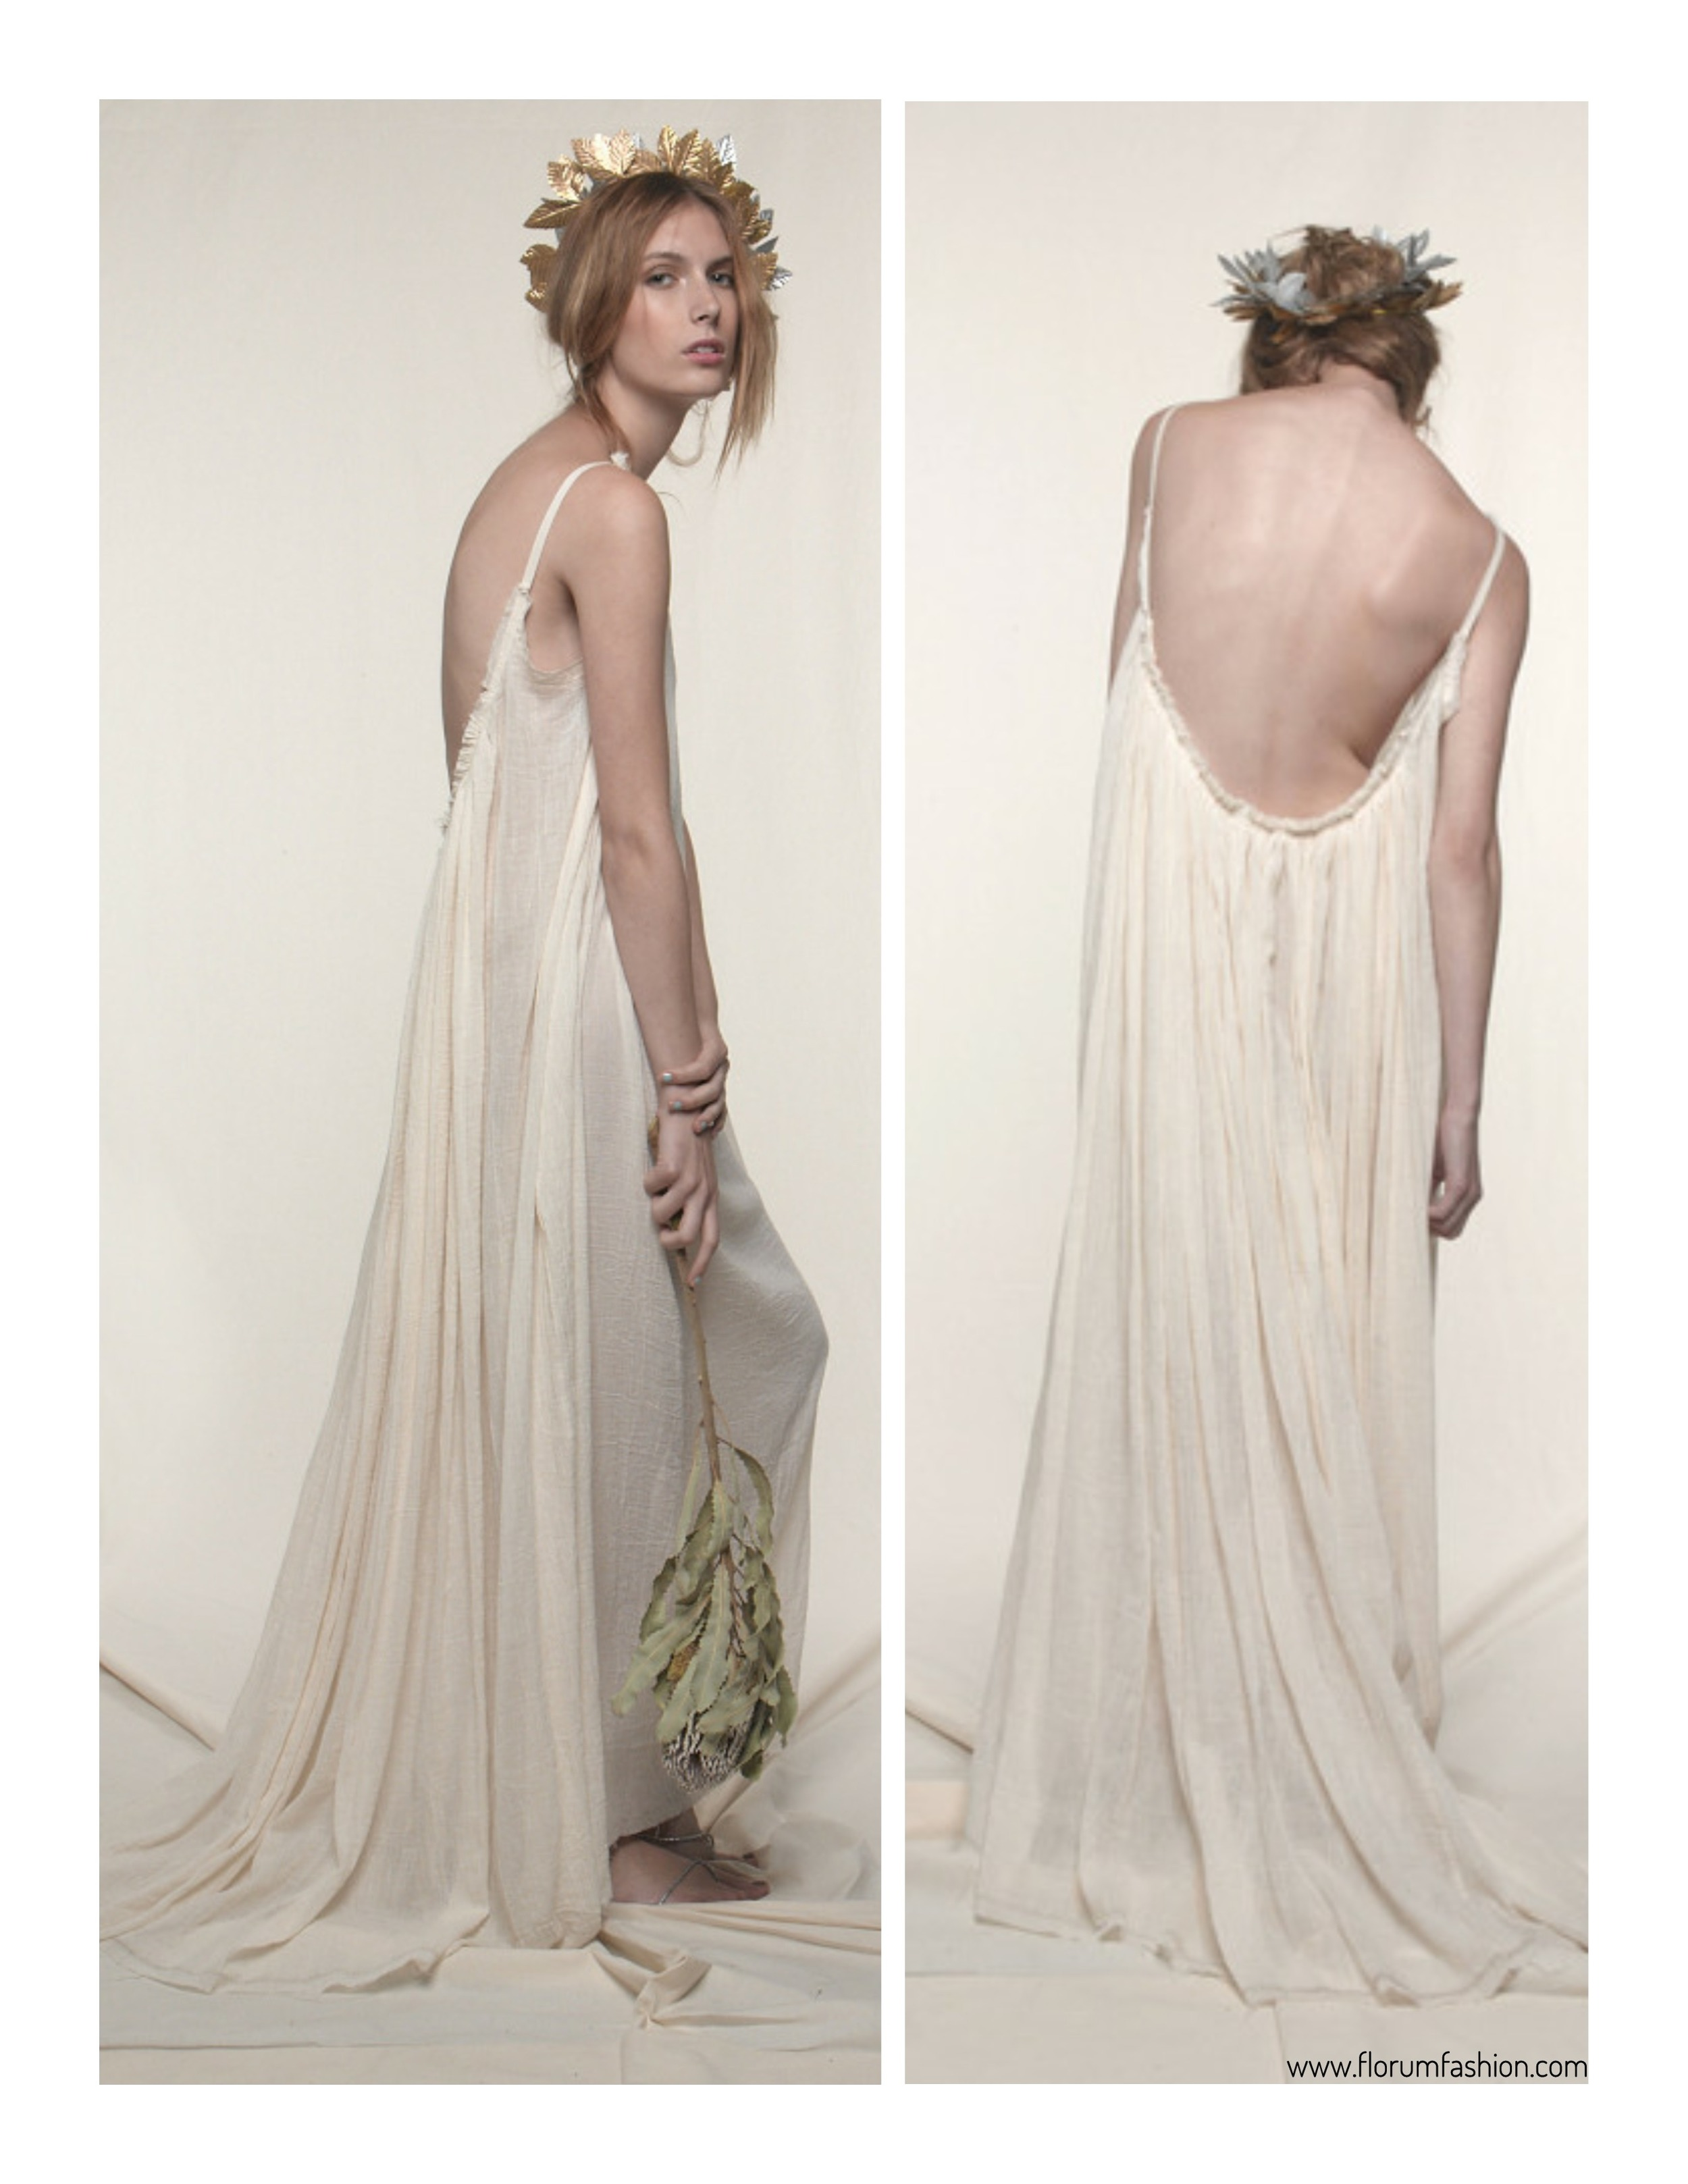 Images from Loup Charmant Spring Summer 2012 Lookbook